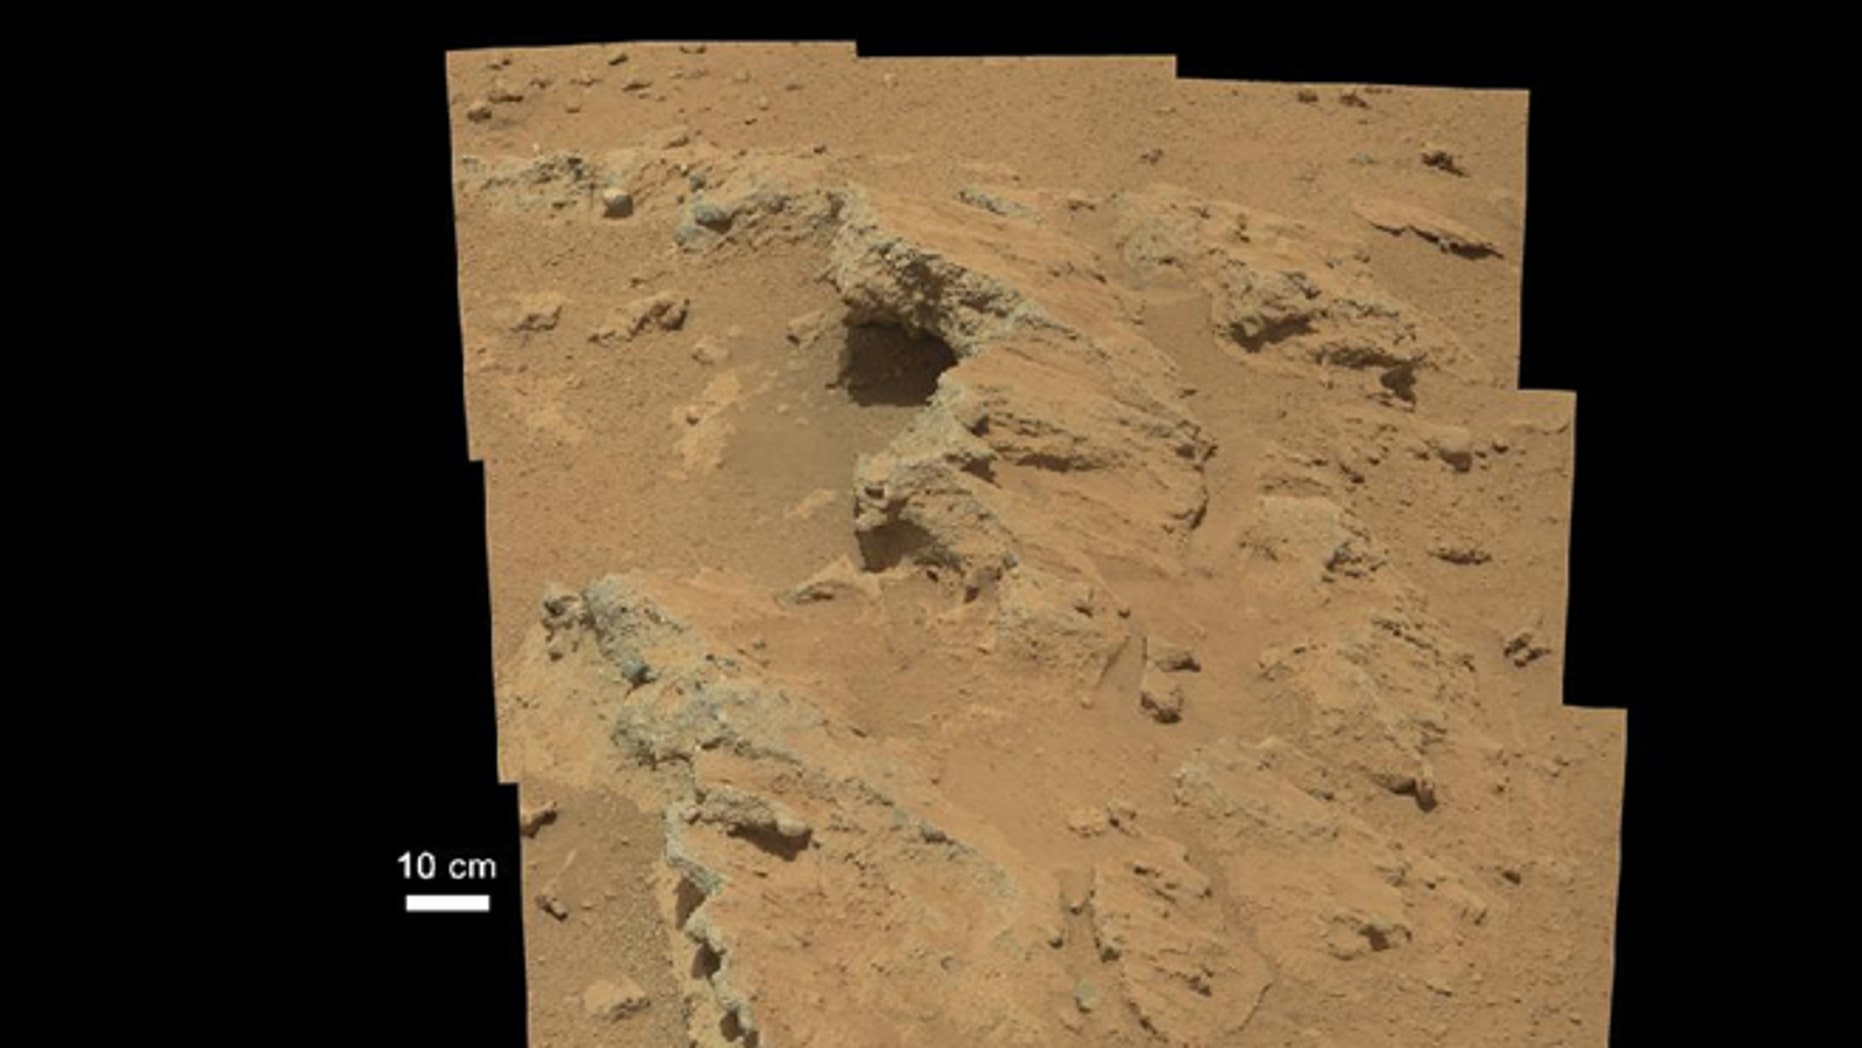 This image provided by NASA shows shows a Martian rock outcrop near the landing site of the rover Curiosity thought to be the site of an ancient streambed.